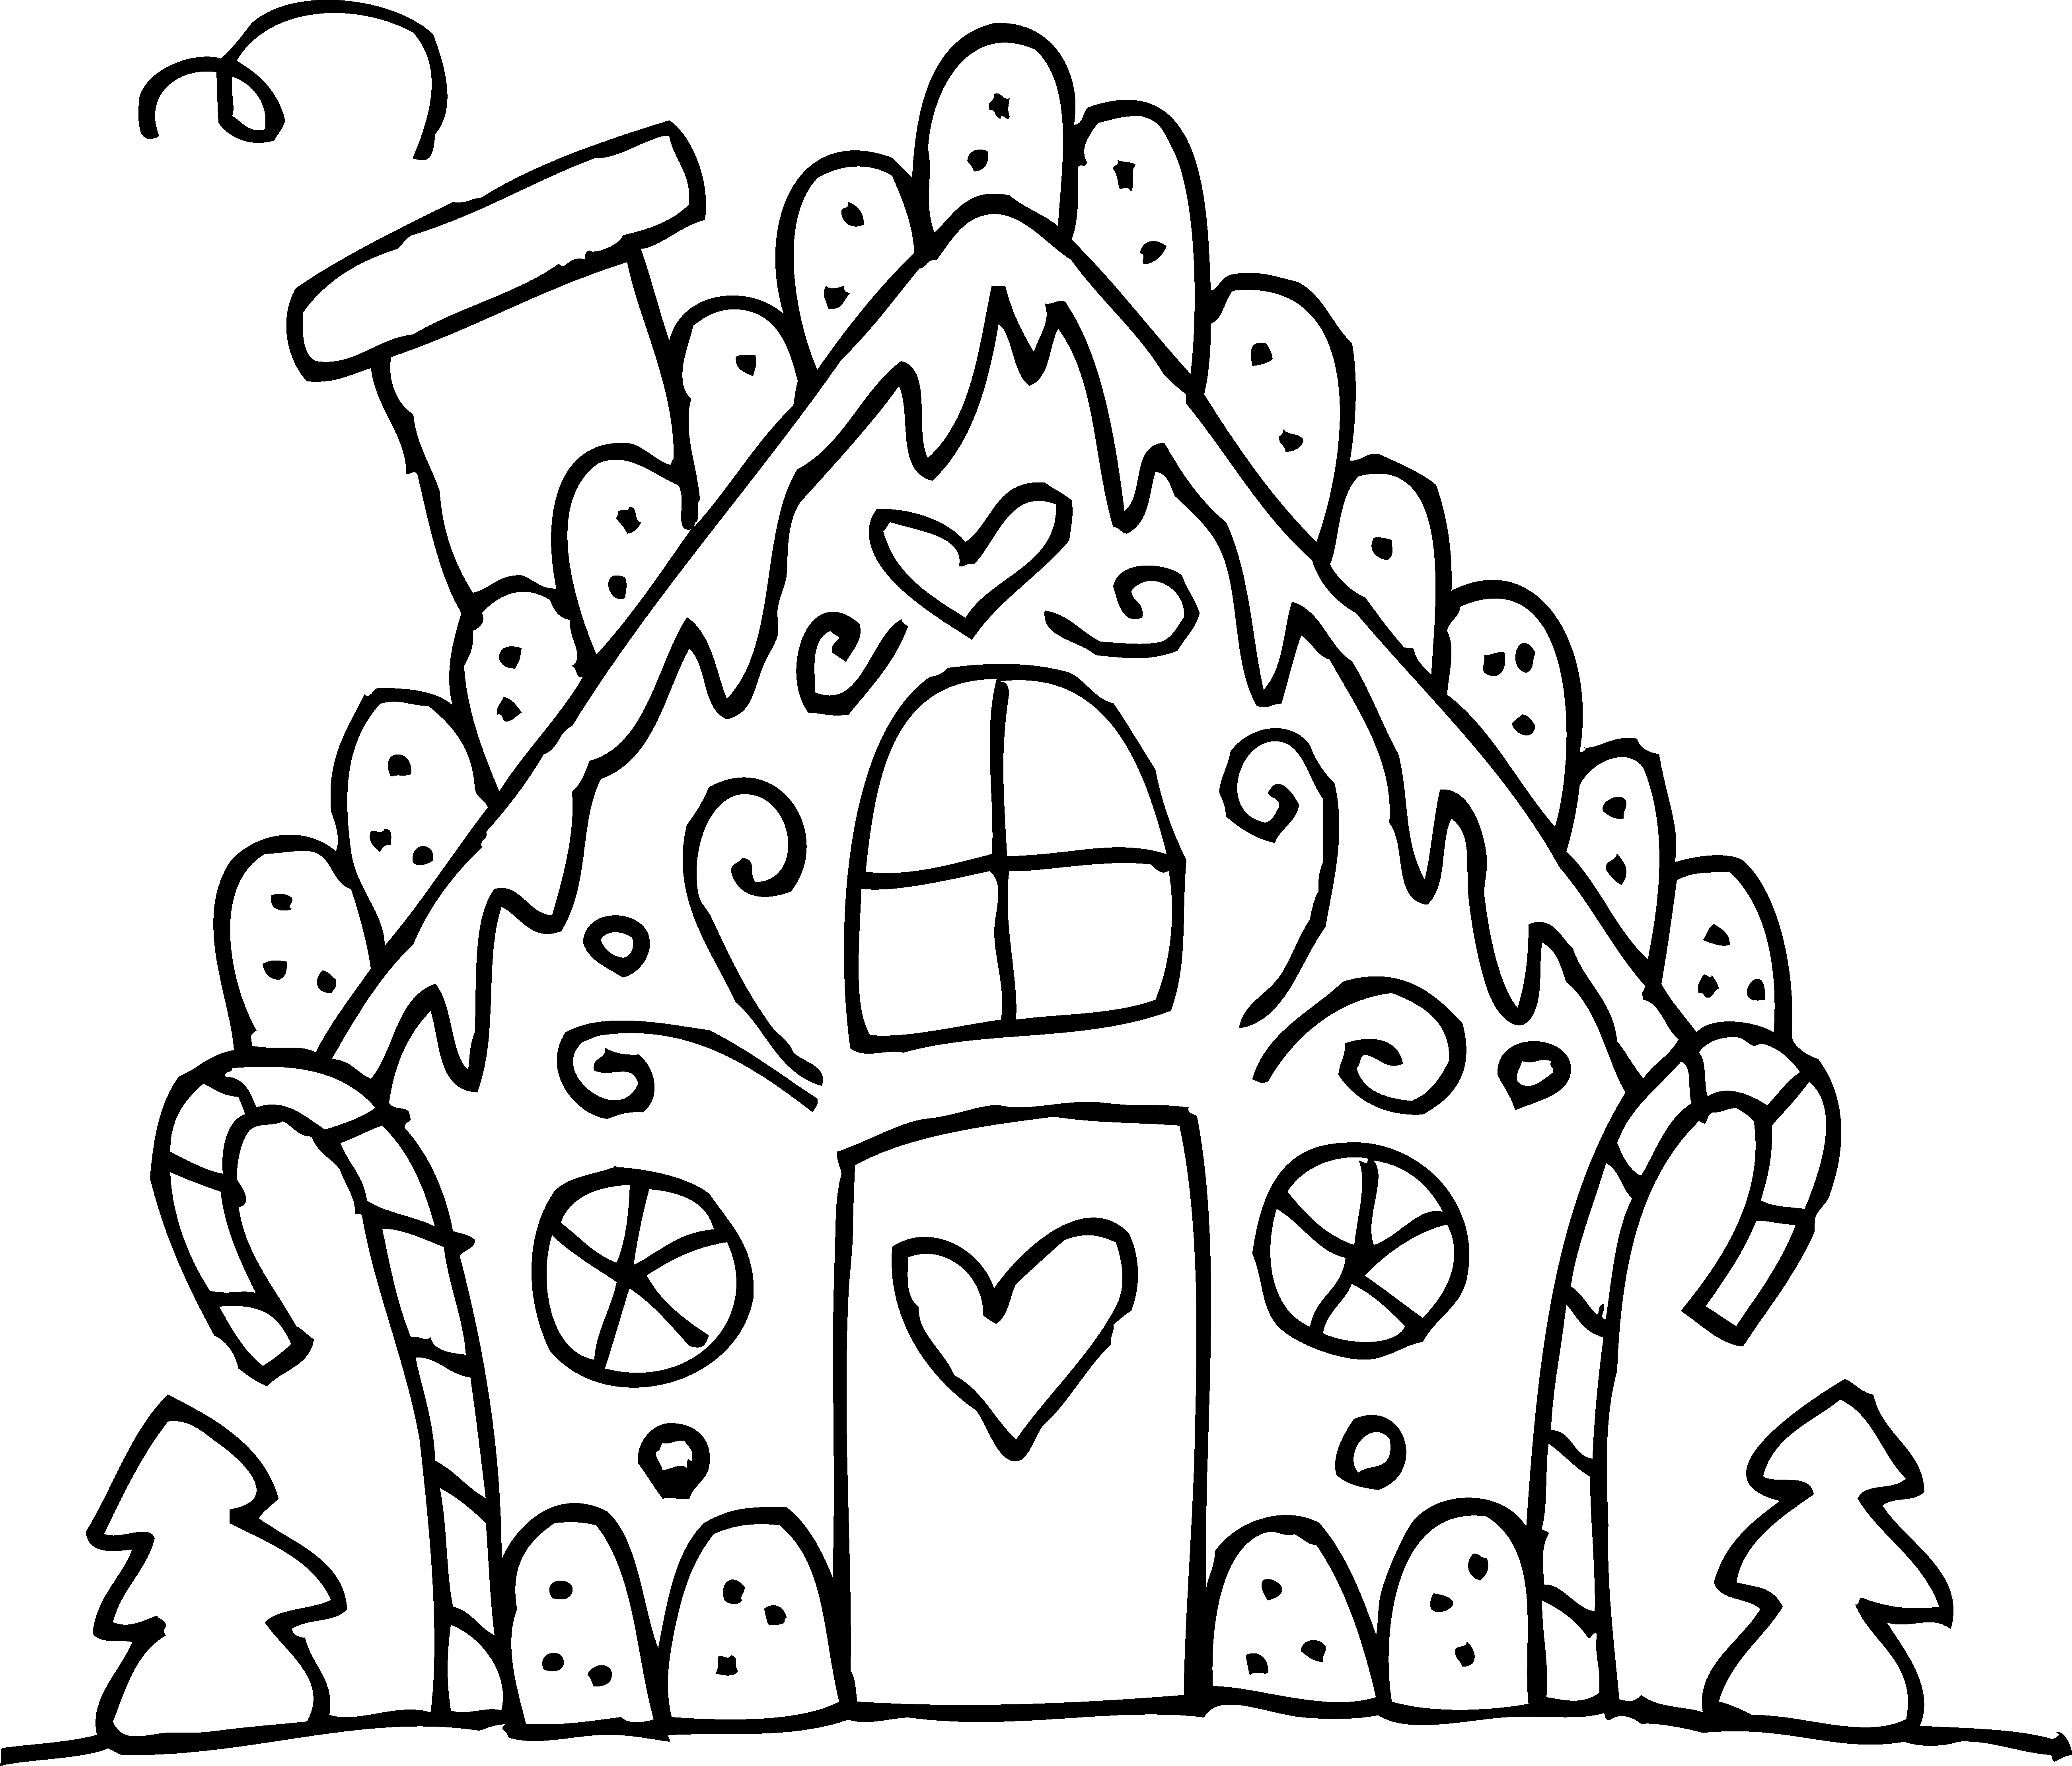 Drawn hosue black and white Gingerbread Black House White And